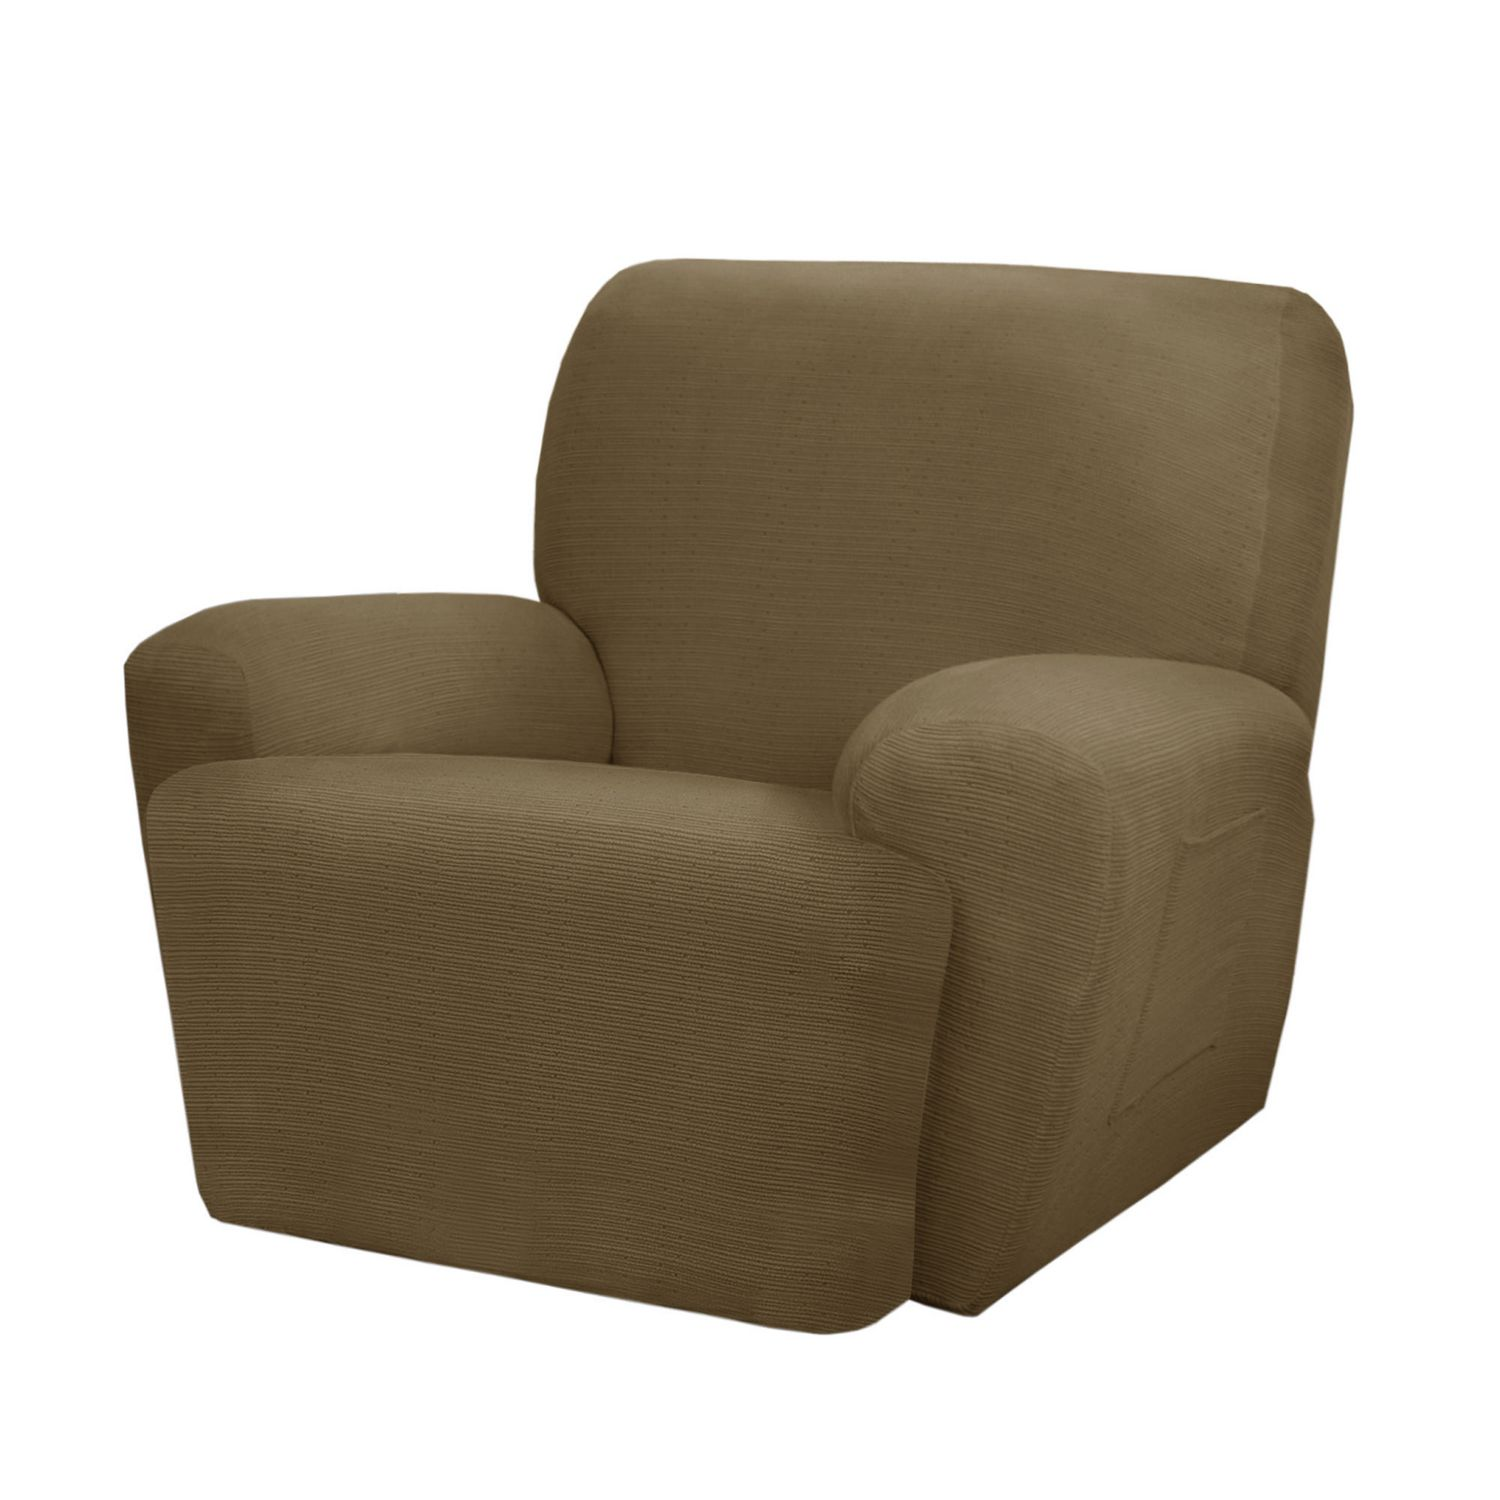 Recliner Covers | Recliner Chair Covers Walmart | Recliner Pet Covers